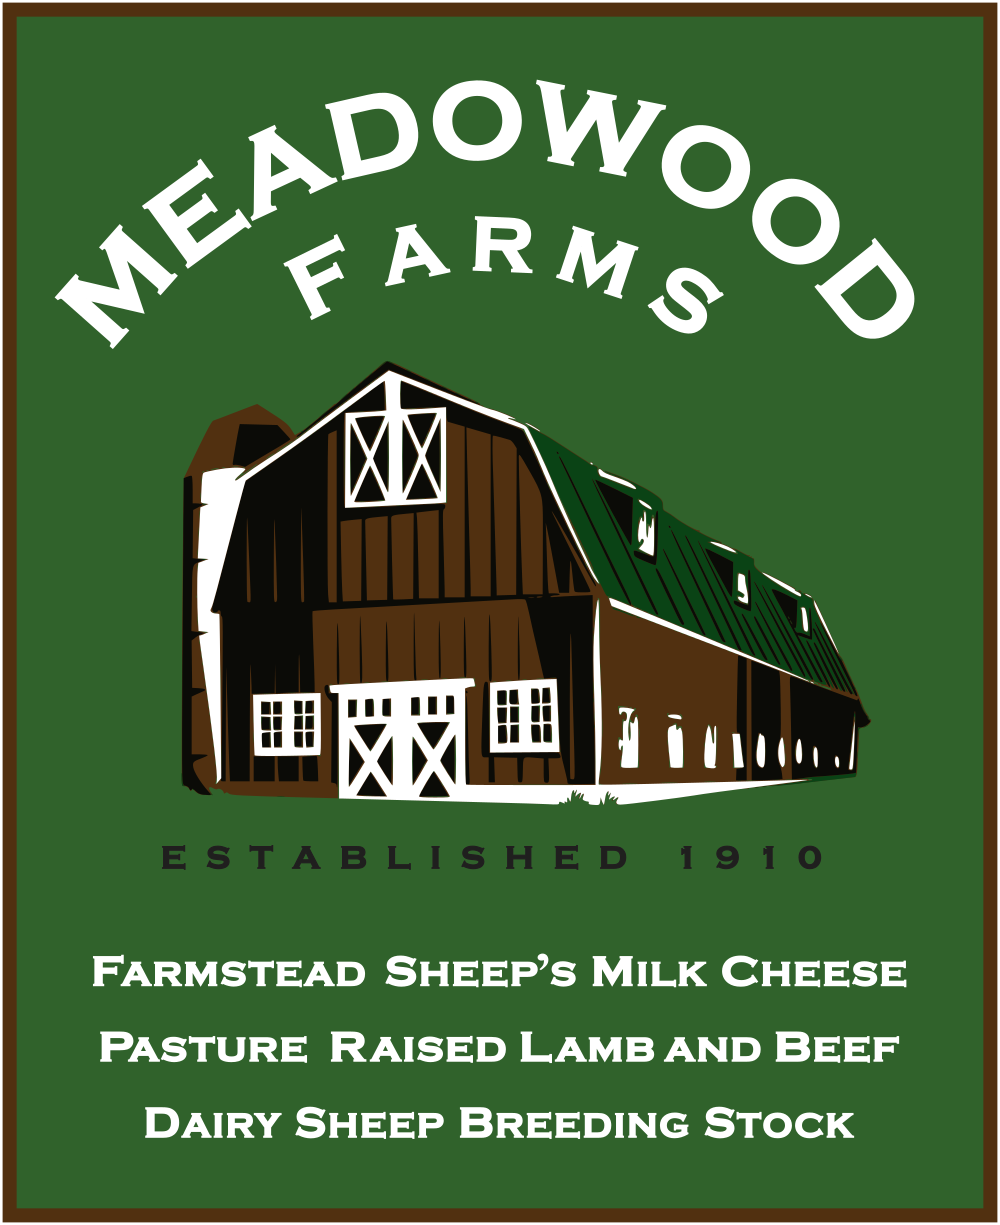 Meadowood Farms